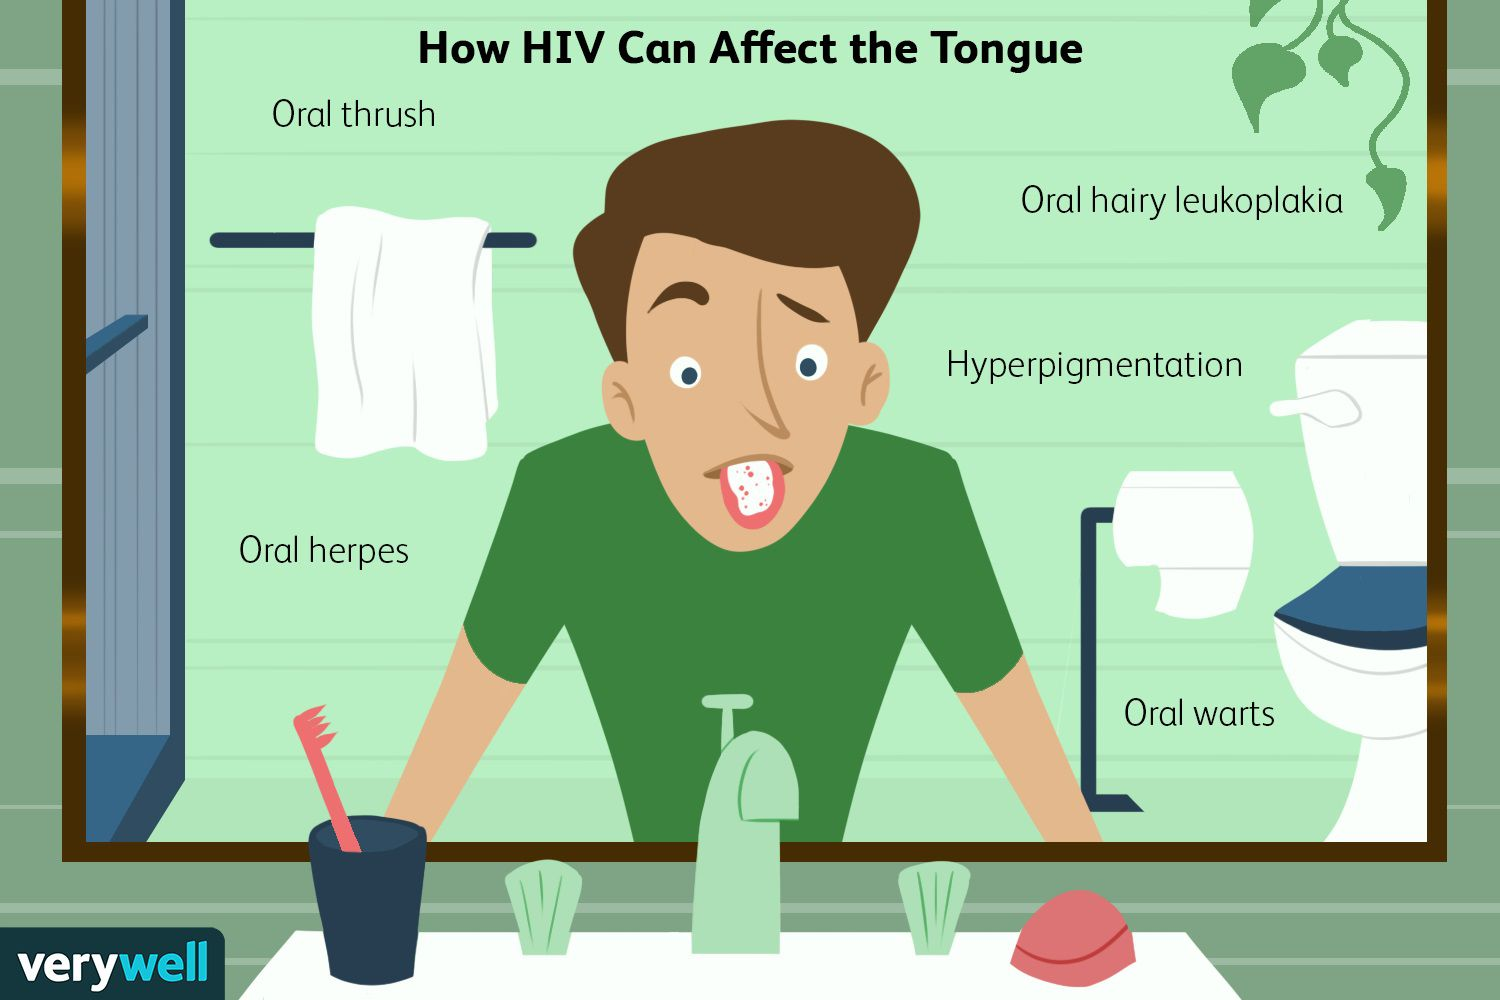 How HIV Can Affect the Tongue